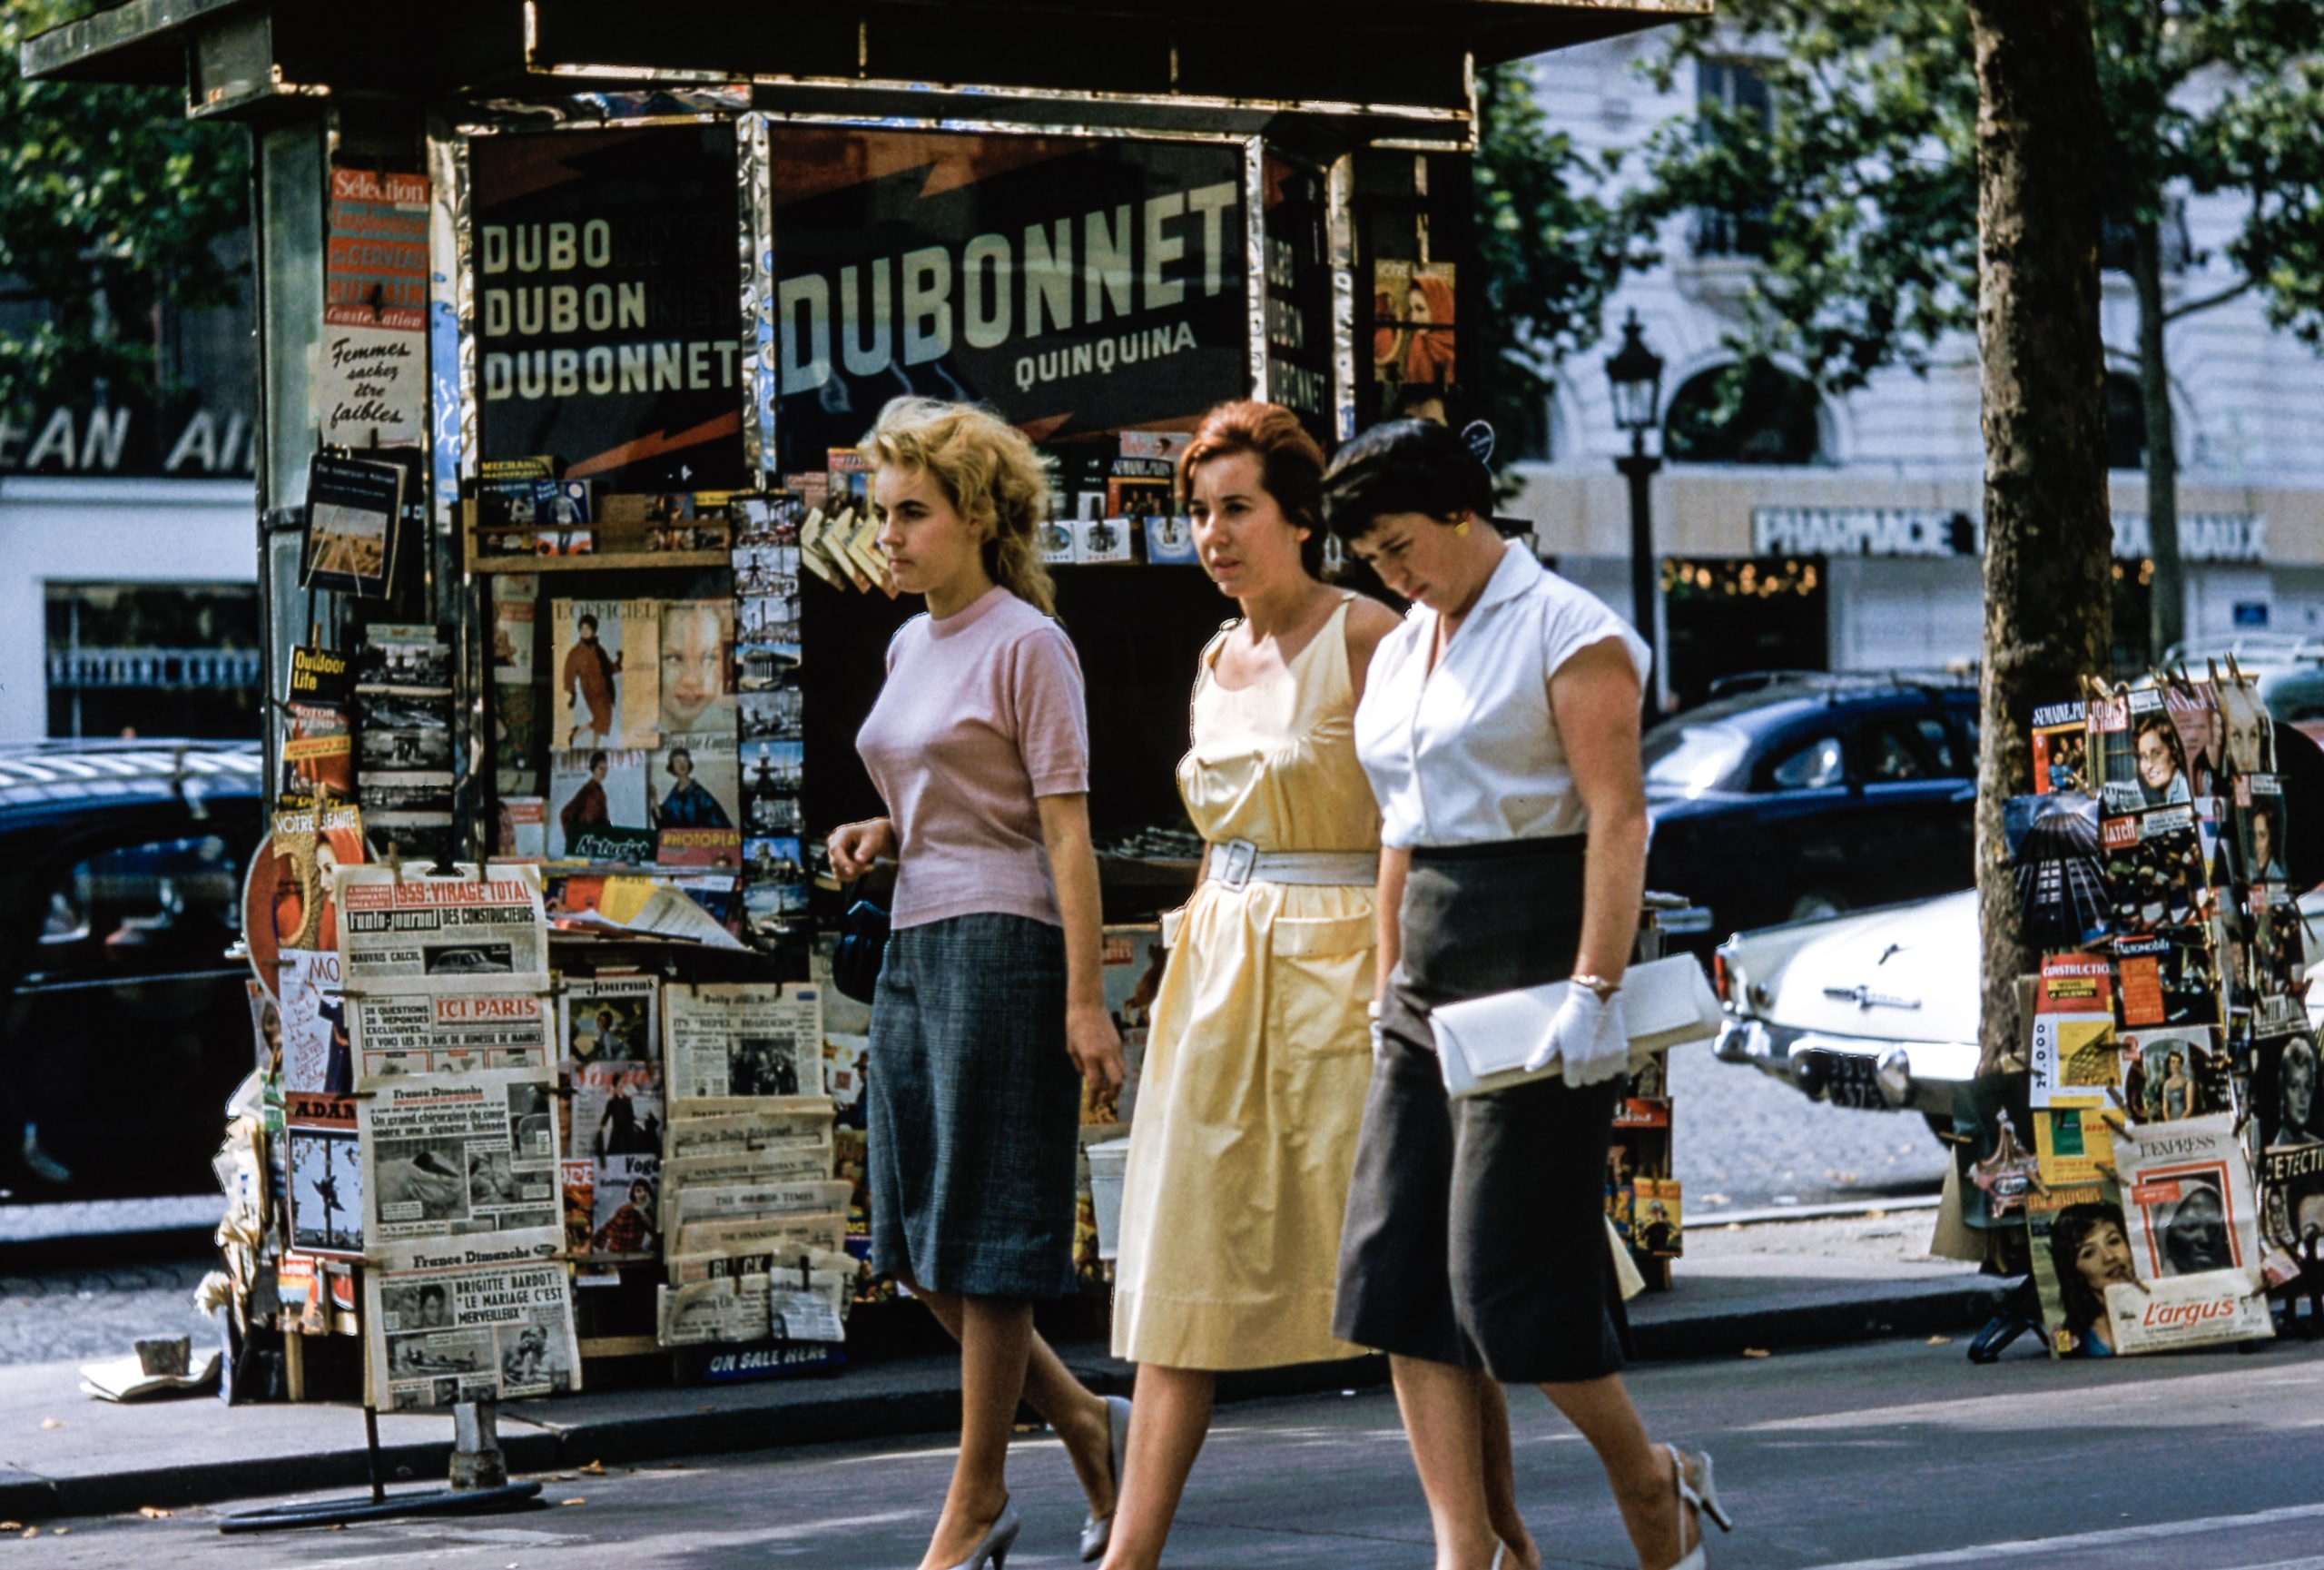 Equality In The Sixties: 4 Things Women Couldn't Do